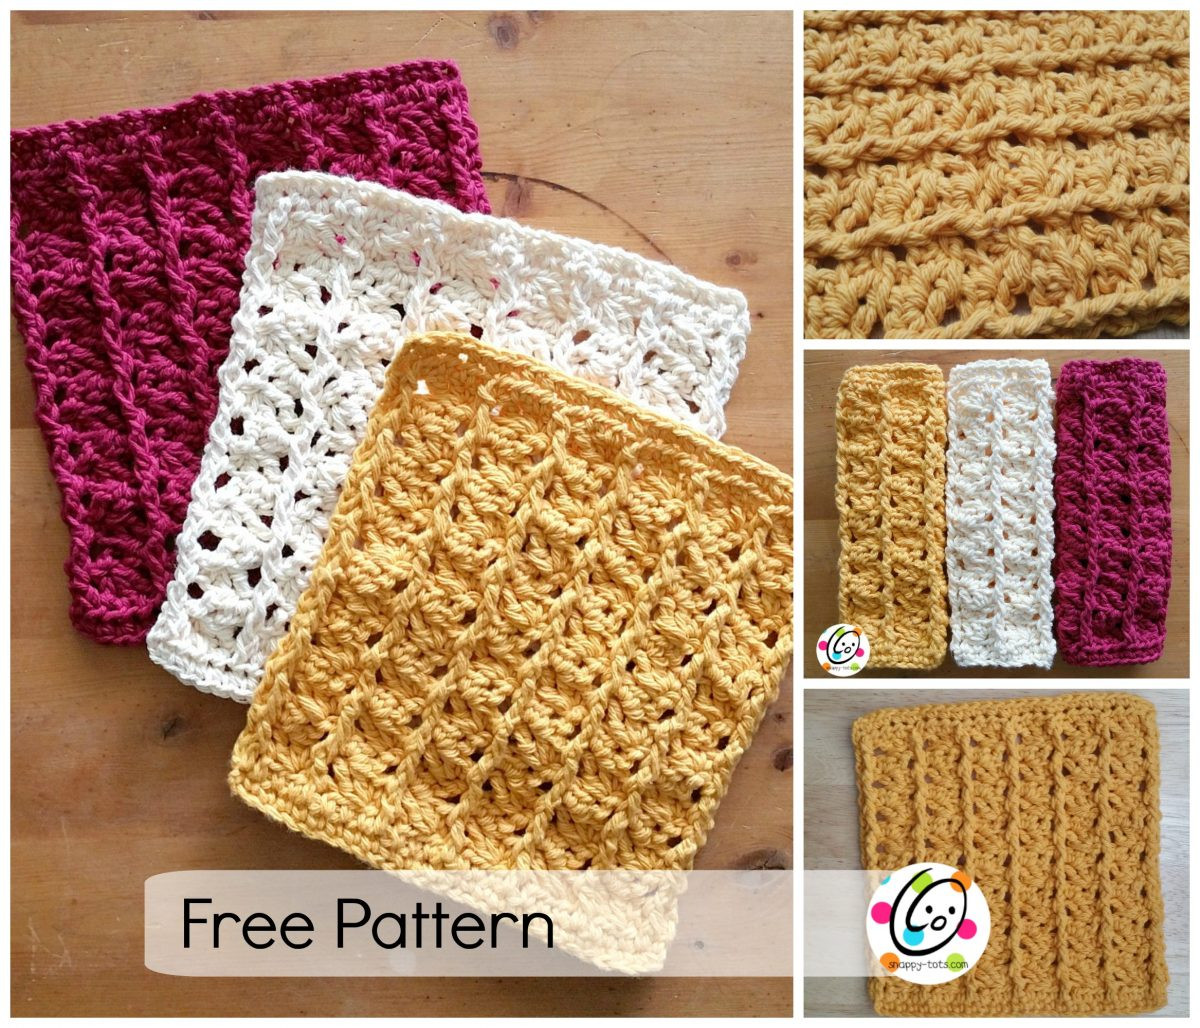 Elegant Free Crochet Patterns to Print Out Dancox for Free Printable Crochet Patterns Of Fresh 45 Images Free Printable Crochet Patterns